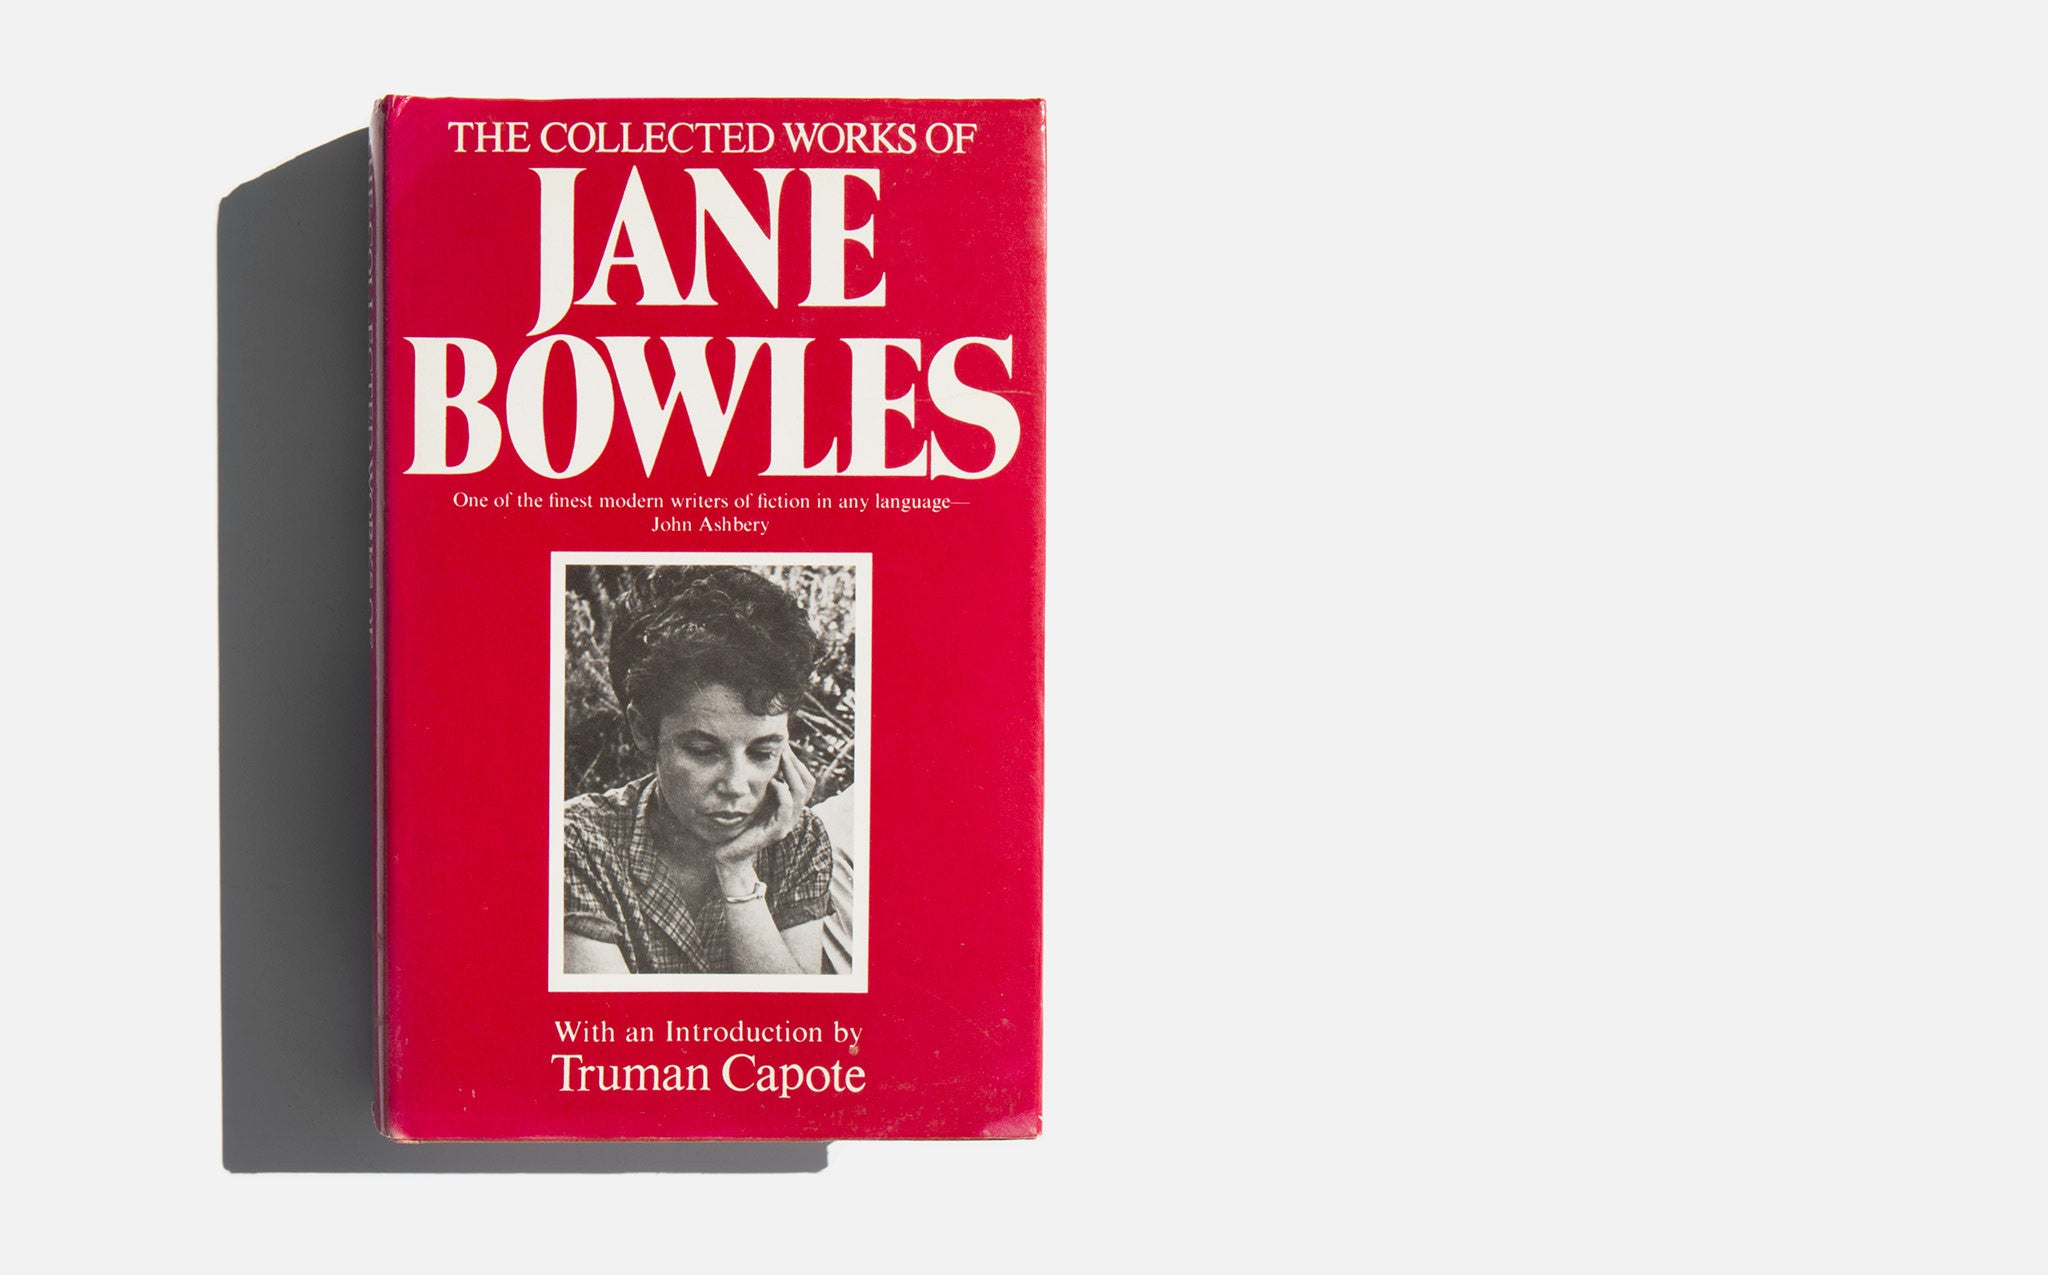 The Collected Works of Jane Bowles kindred black